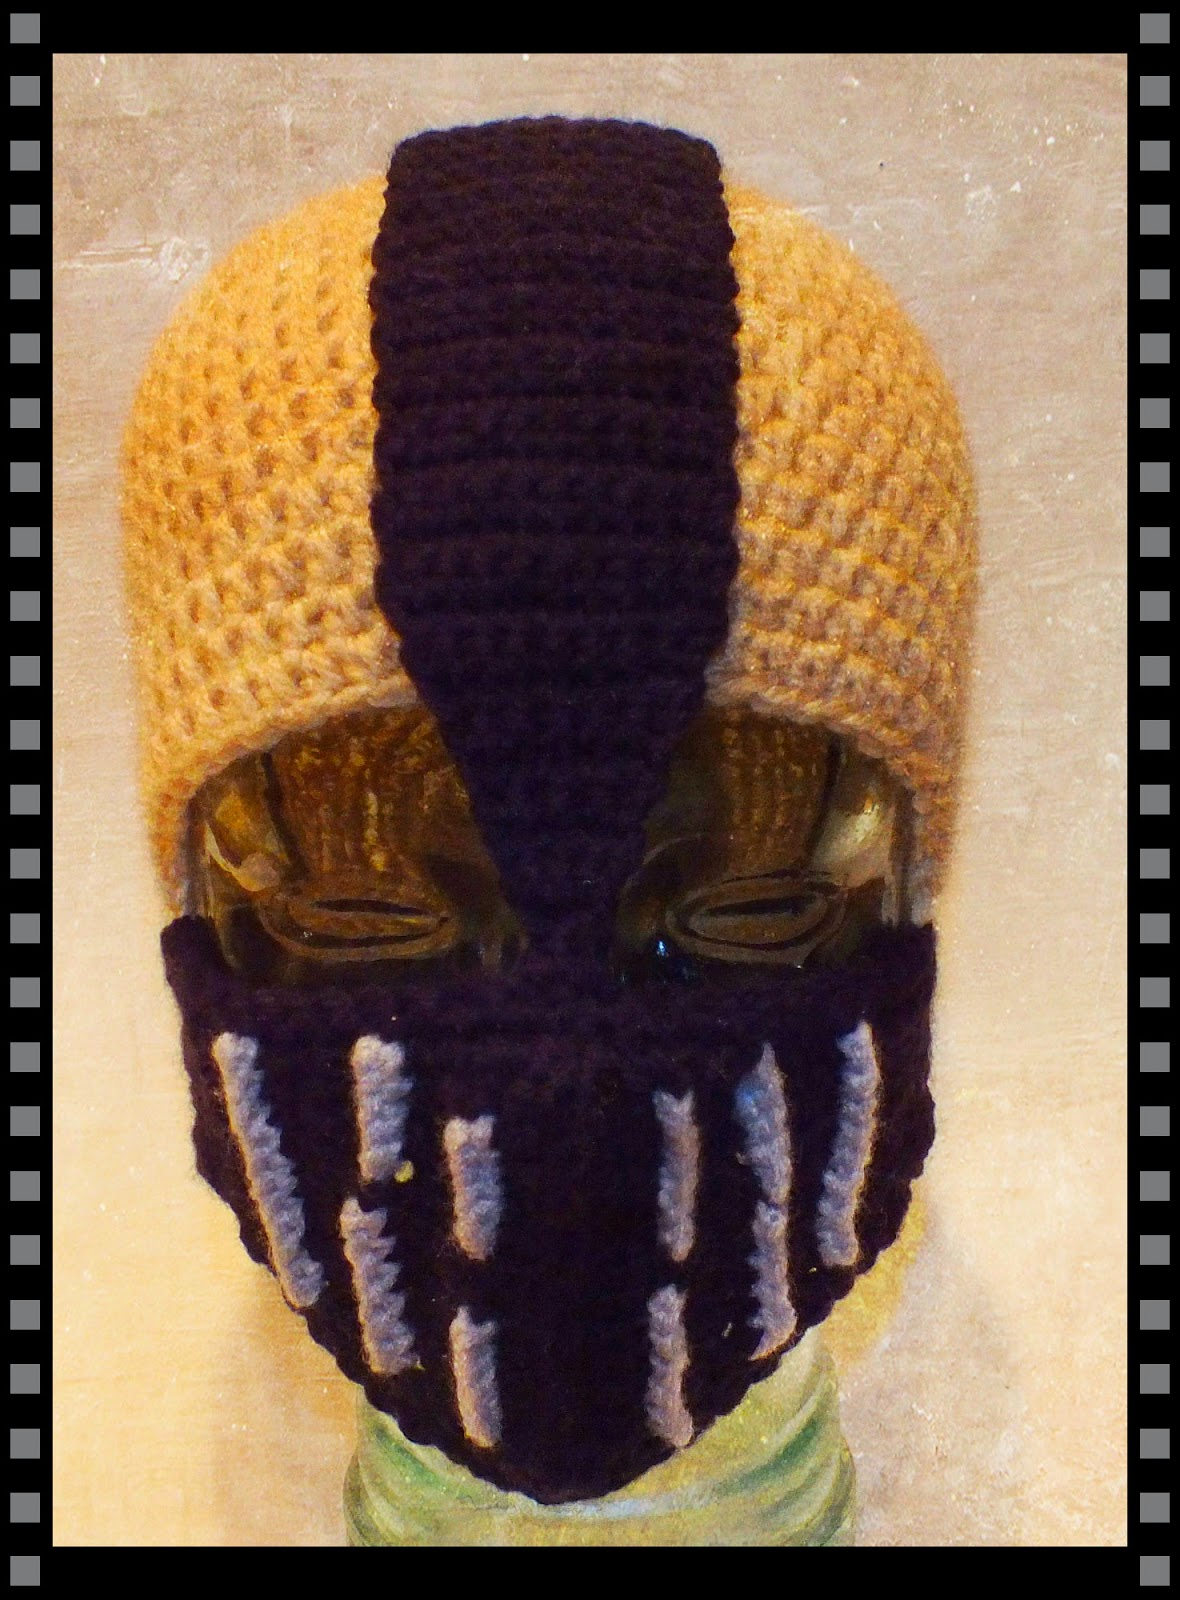 Bane Inspired Crochet Hat Pattern© By Connie Hughes Designs©